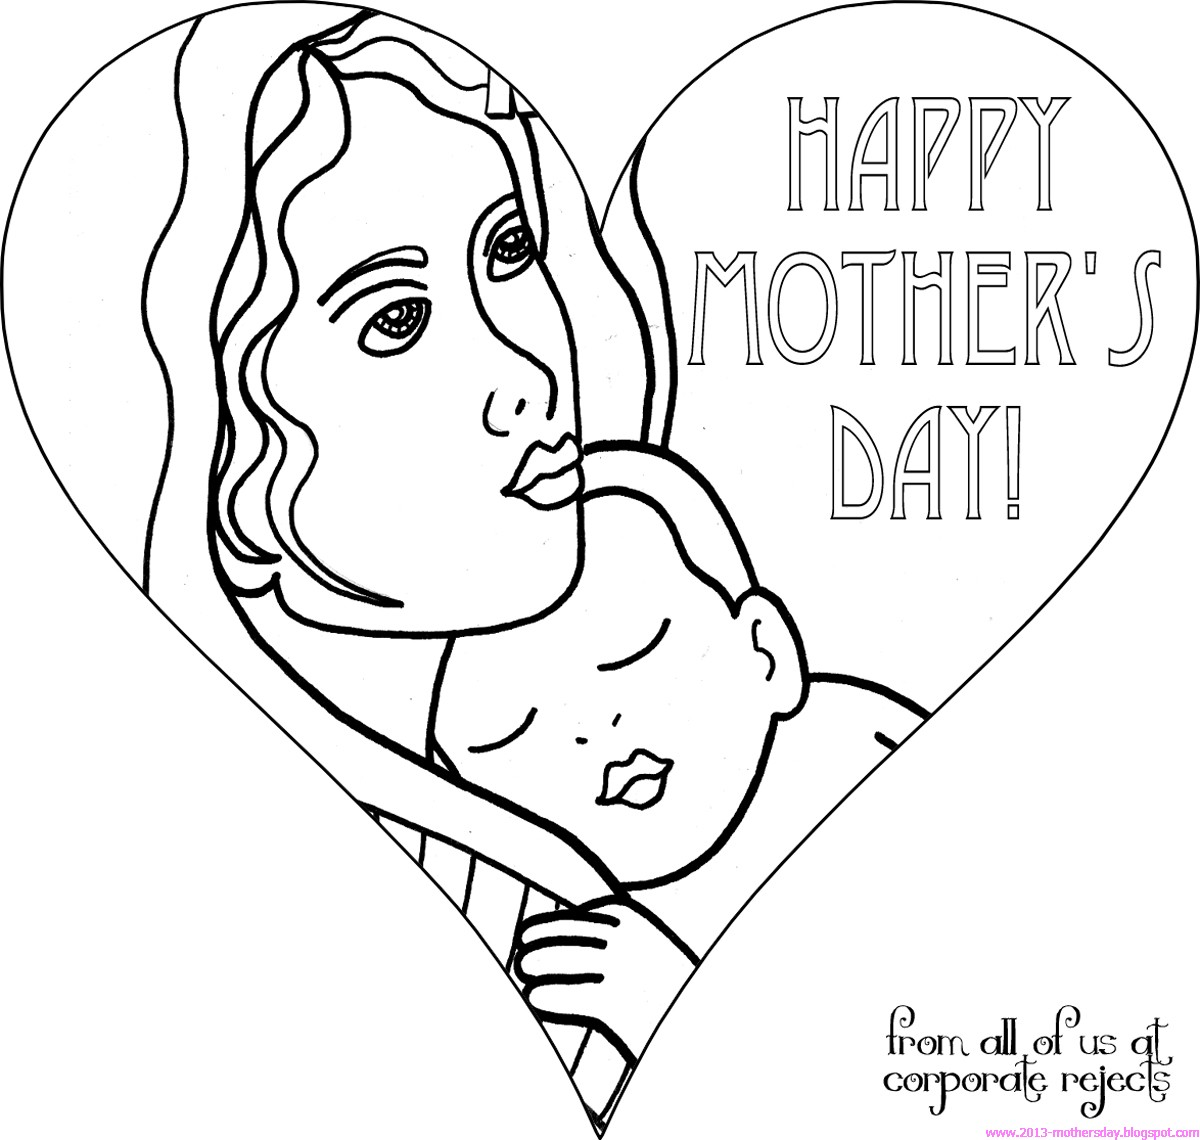 Wallpaper Free Download Happy Mothers Day Coloring Pages Mothers Day Colouring Pages